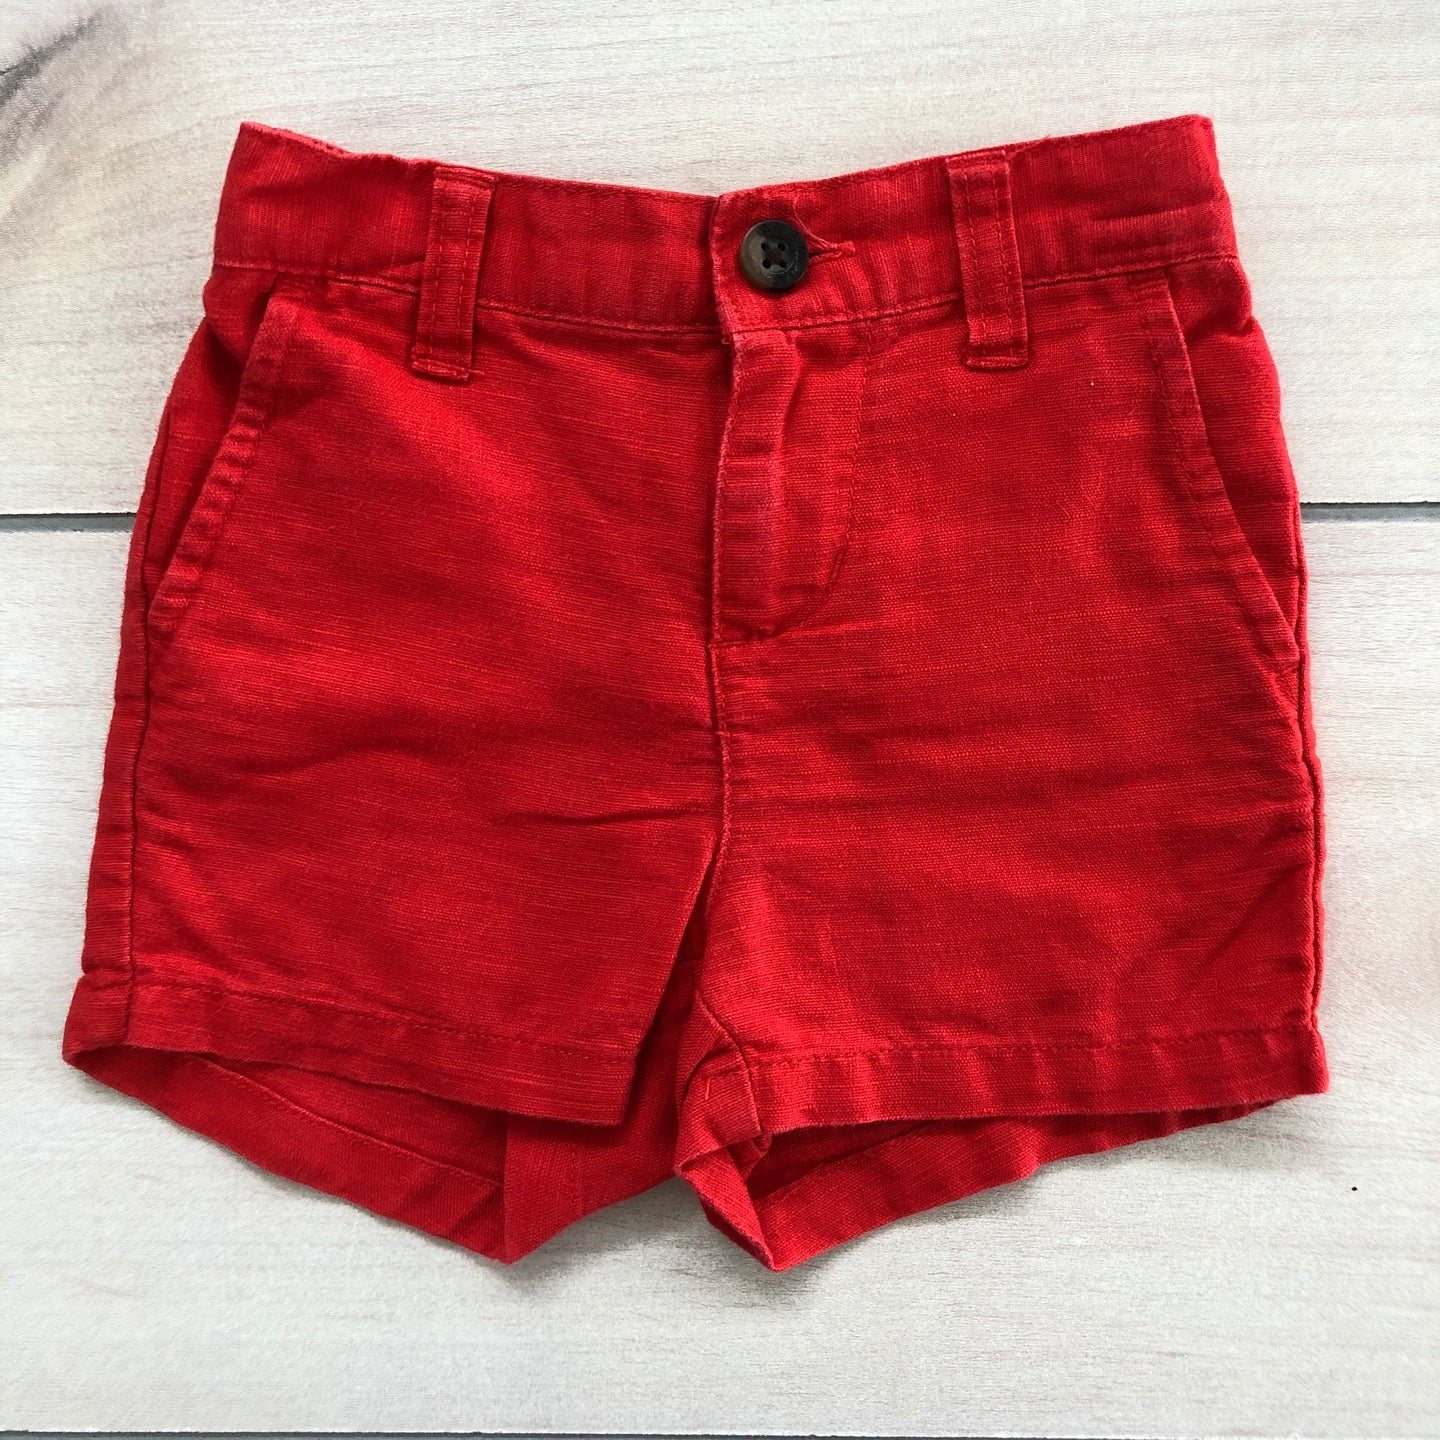 Janie and Jack Red Shorts 6-12 months